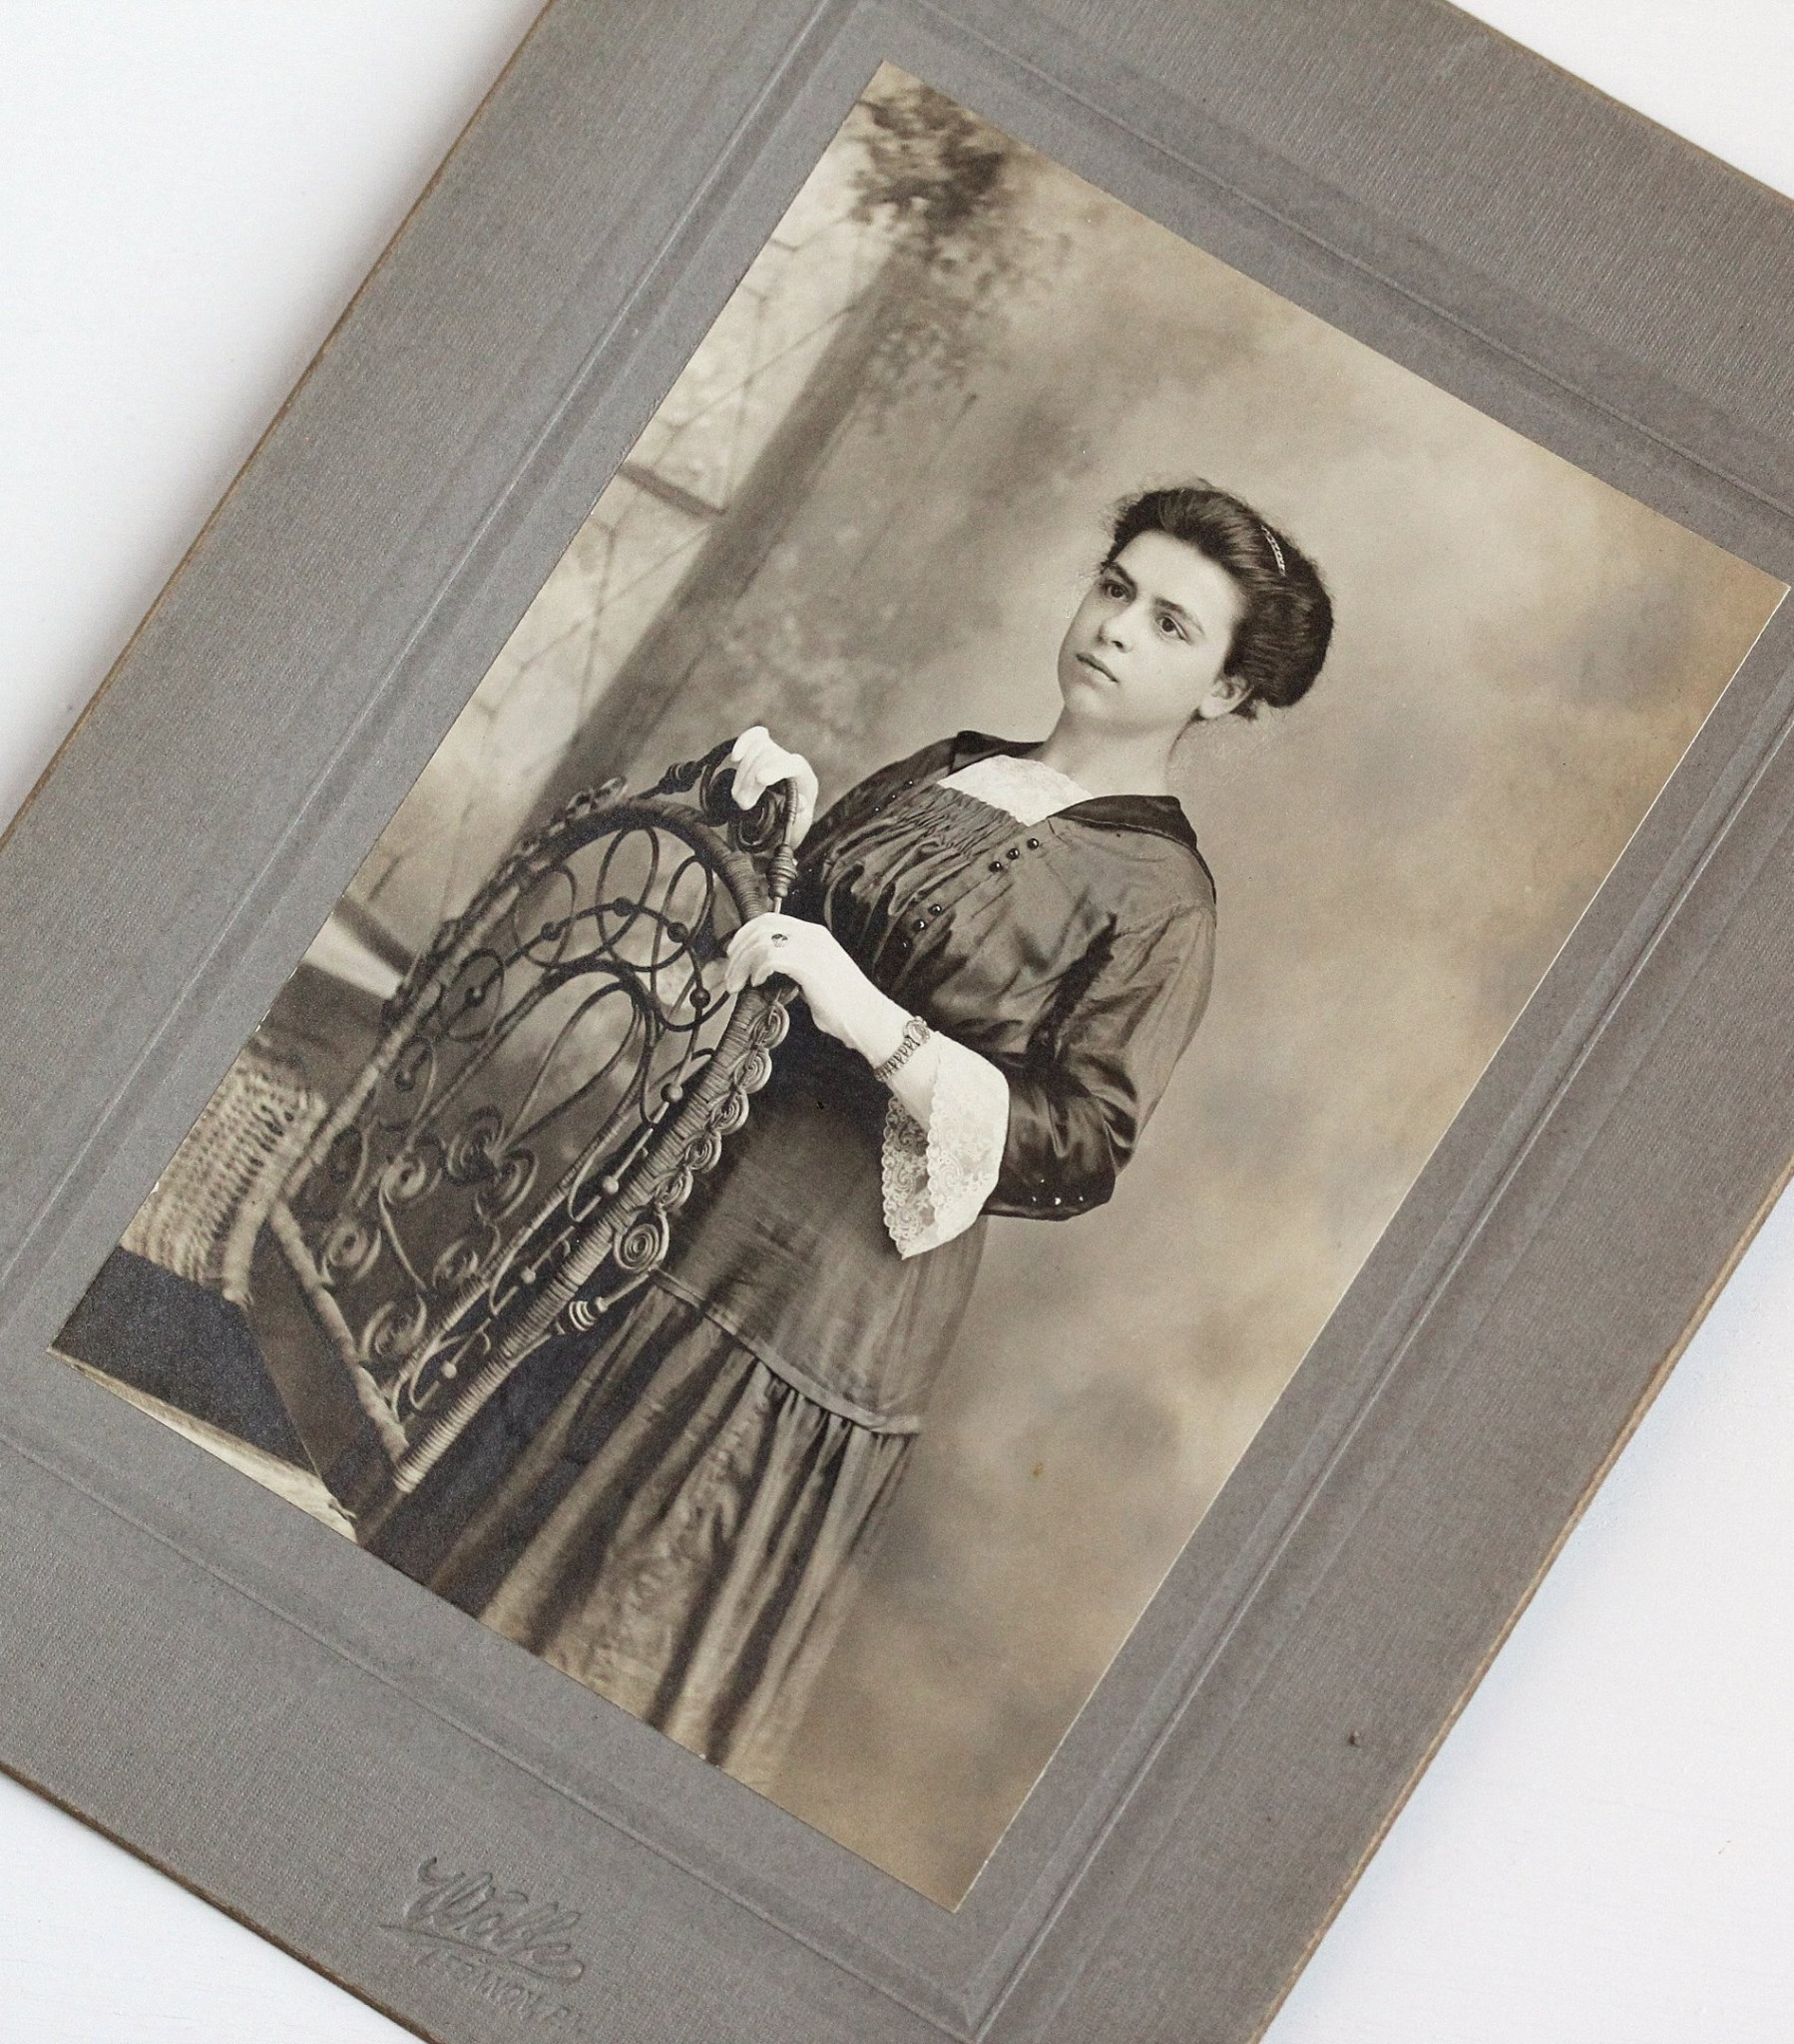 Edwardian era cabinet card from Lebanon, Pennsylvania featuring a stately young woman wearing an expansion bracelet. (I gifted this lovely lady to Miss Laura Mae for Christmas!)